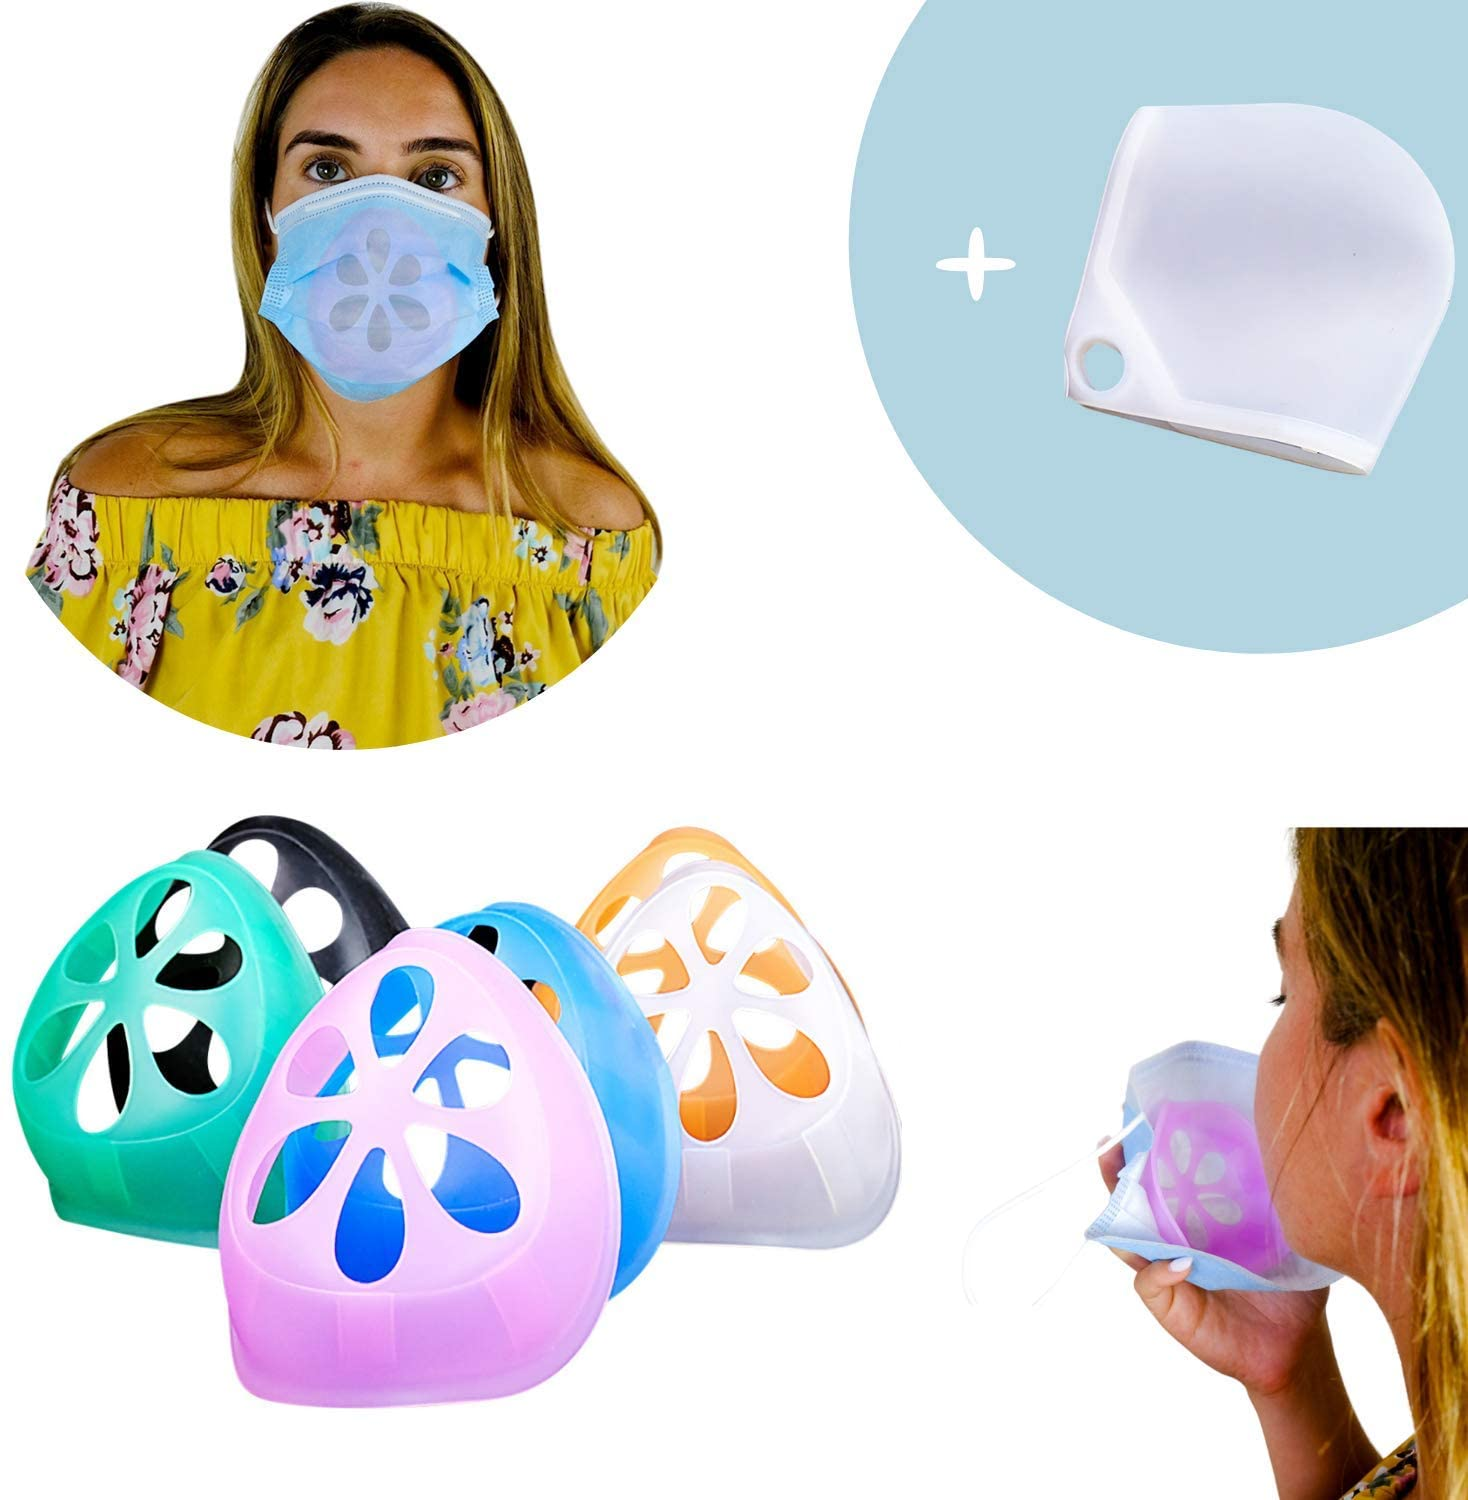 Face Bracket for Mask Support Frame - Silicone Mask Bracket 6 Colours with Face Mask Bracket Case for Improved Breathing or Lipstick Protection